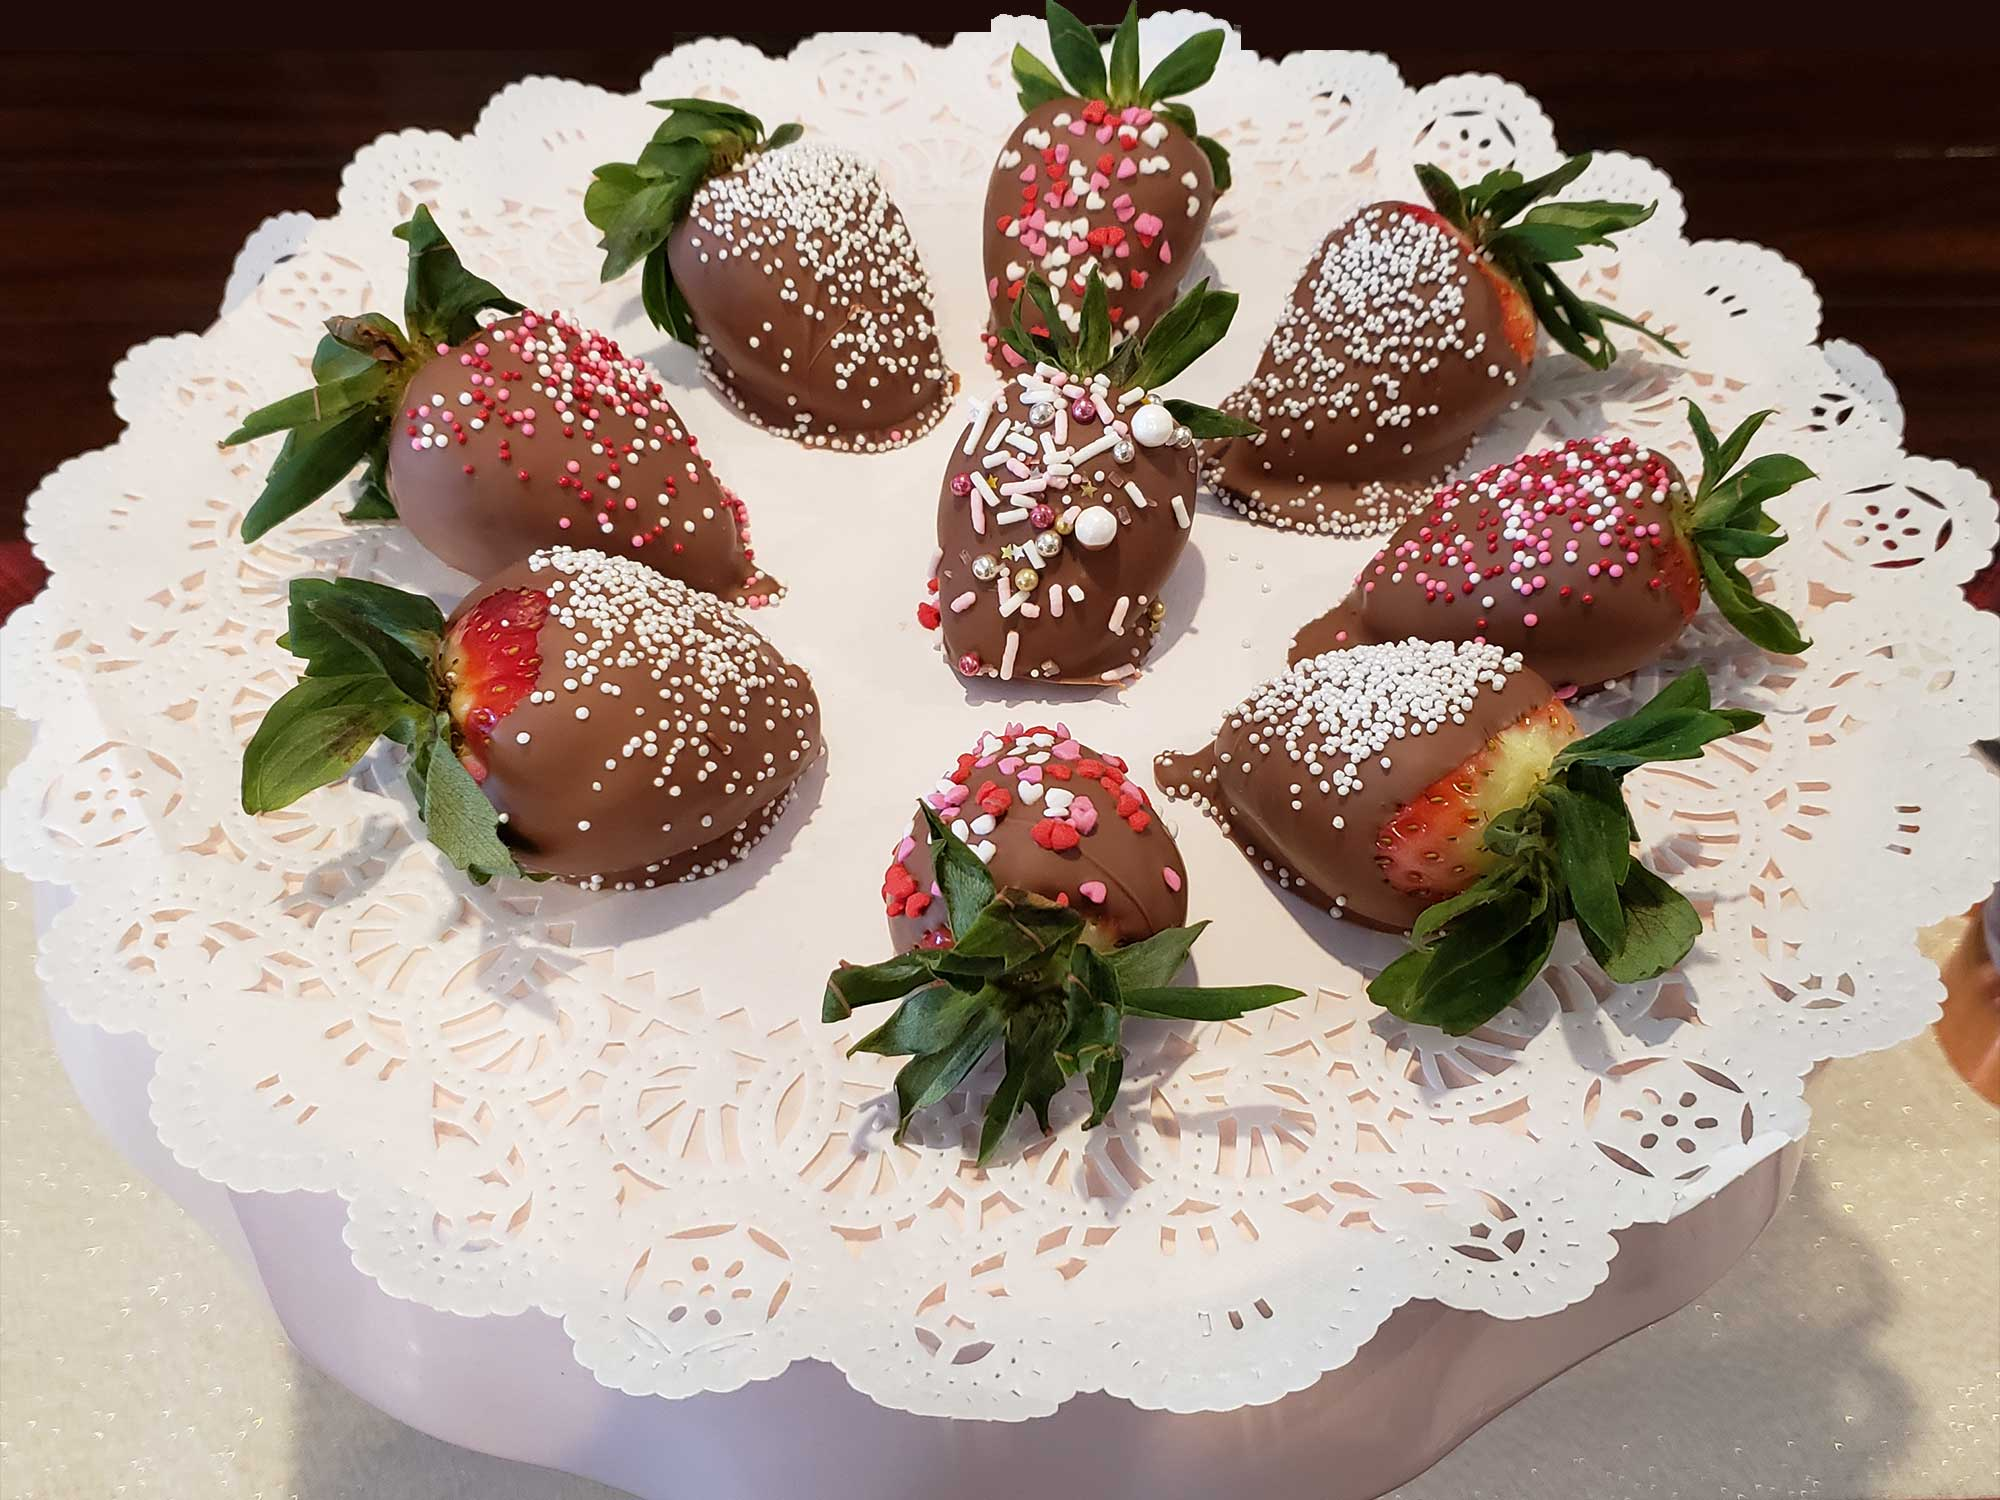 Chocoilate covered strawberries - Shannon's Eyes on the Pies